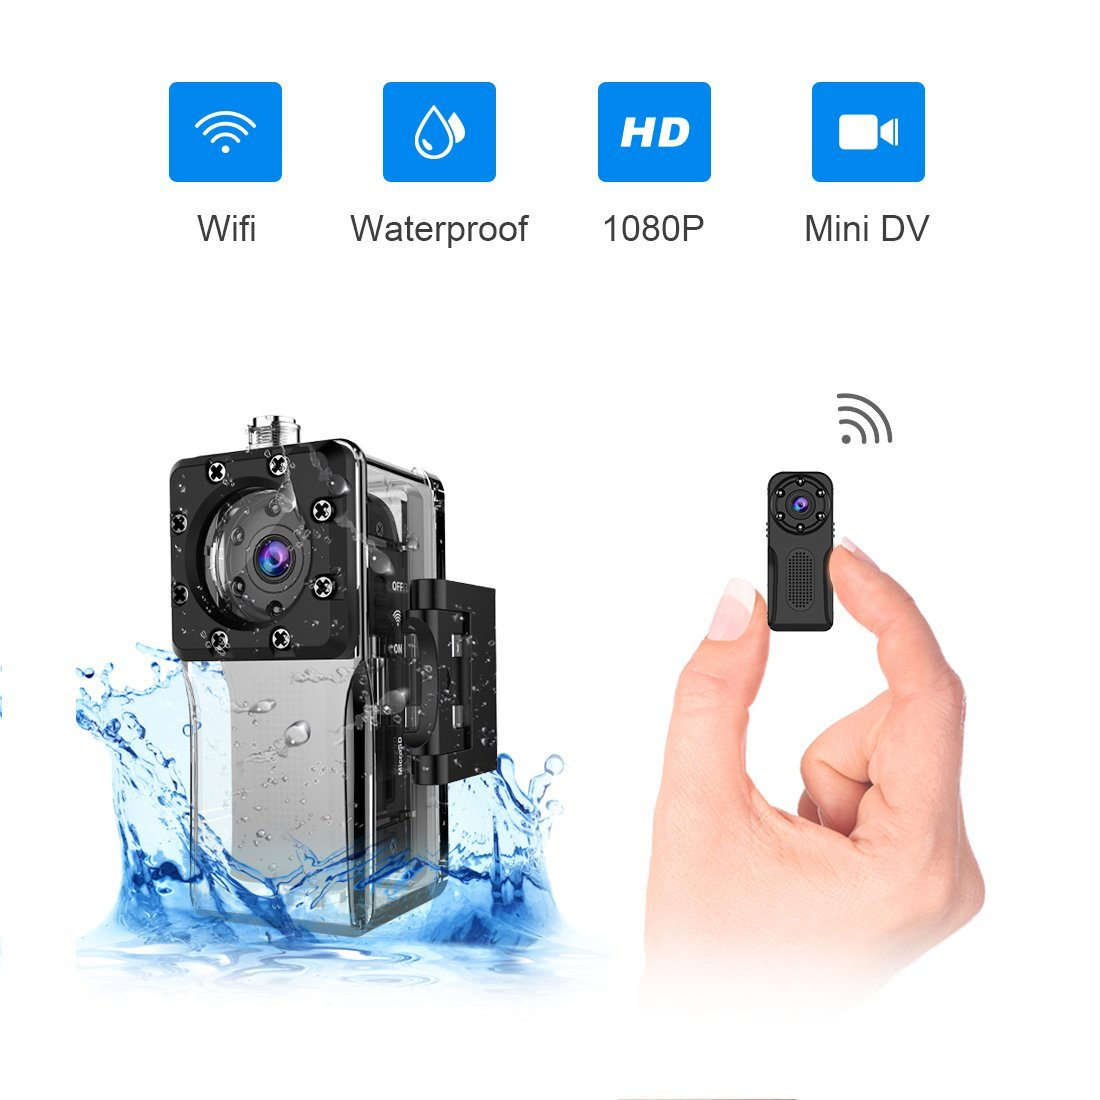 Waterproof WiFi Mini Spy Hidden Camera,ZZCP Full HD 1081P Portable Small Wireless Nanny Cam with Night Vision and Motion Detection,Perfect Covert Tiny Security Camera for Indoor and Outdoor